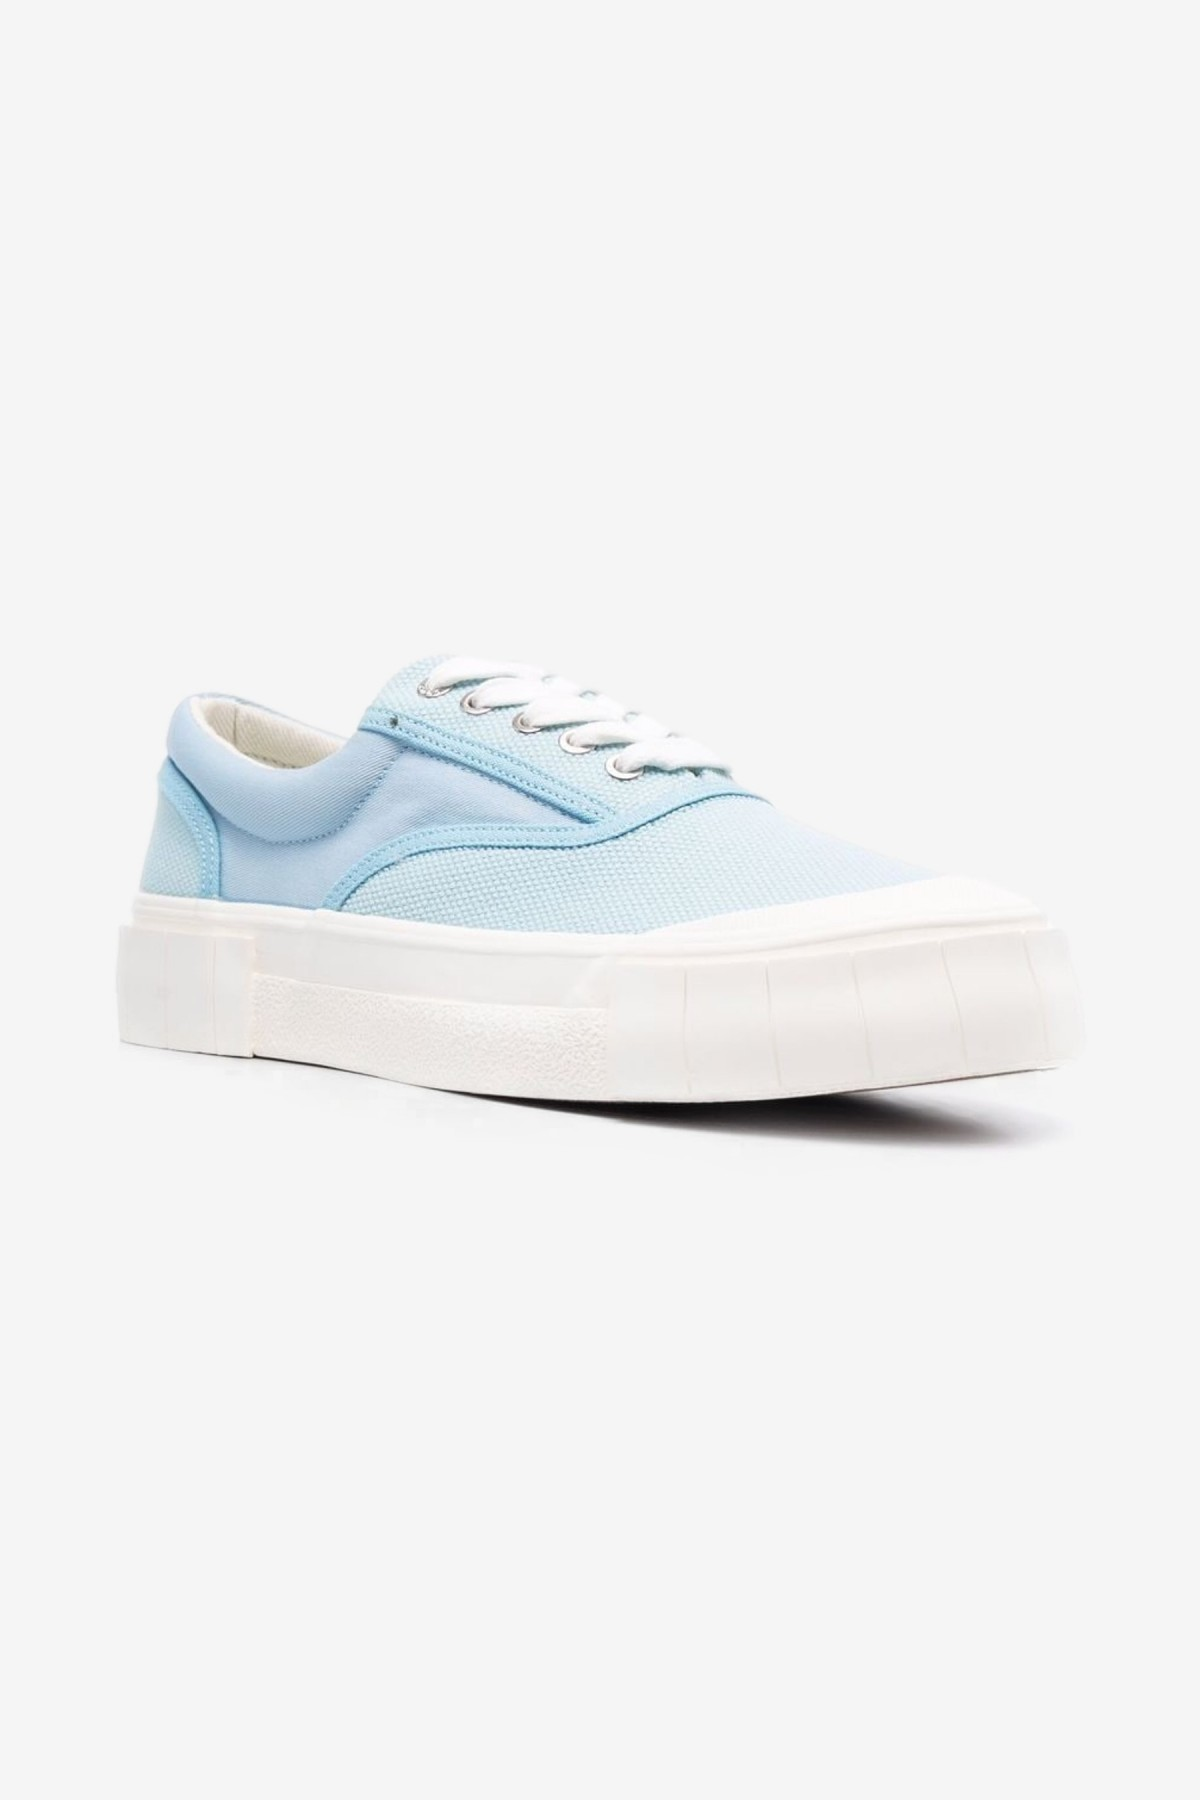 Good News Footwear Opal in Blue